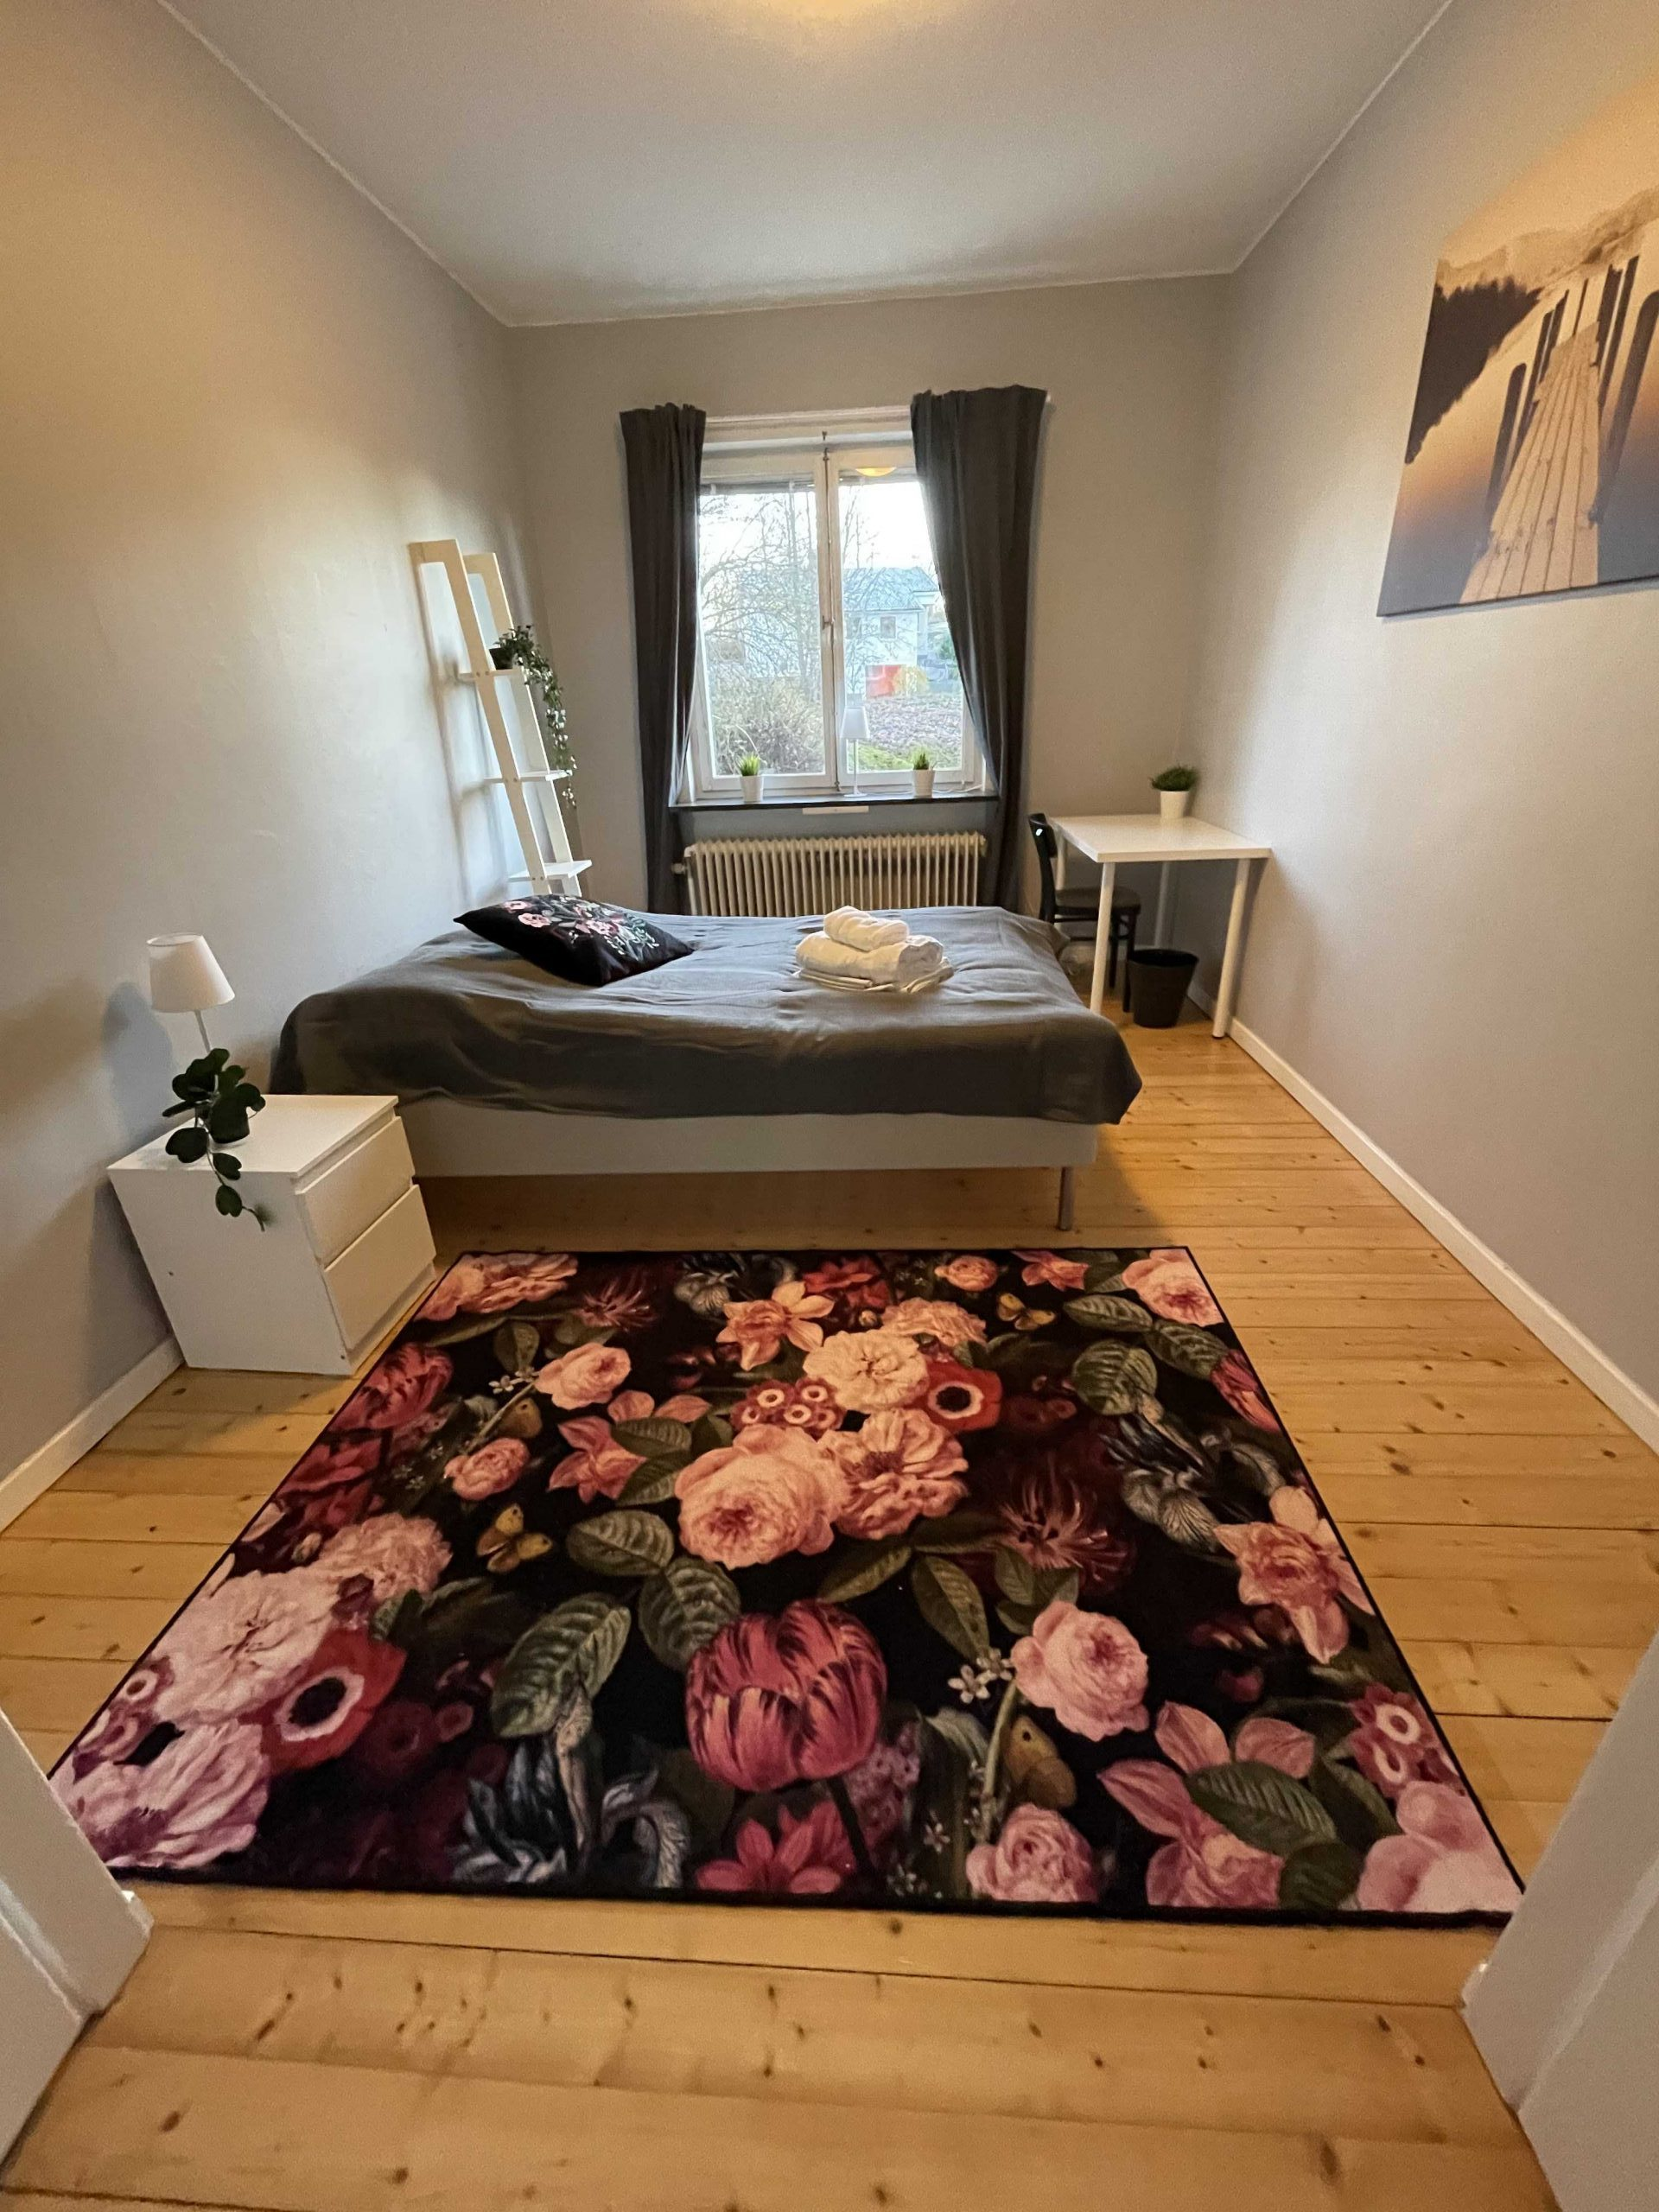 Stay Easy, Bussiness apartment, furnished apartment, long stay